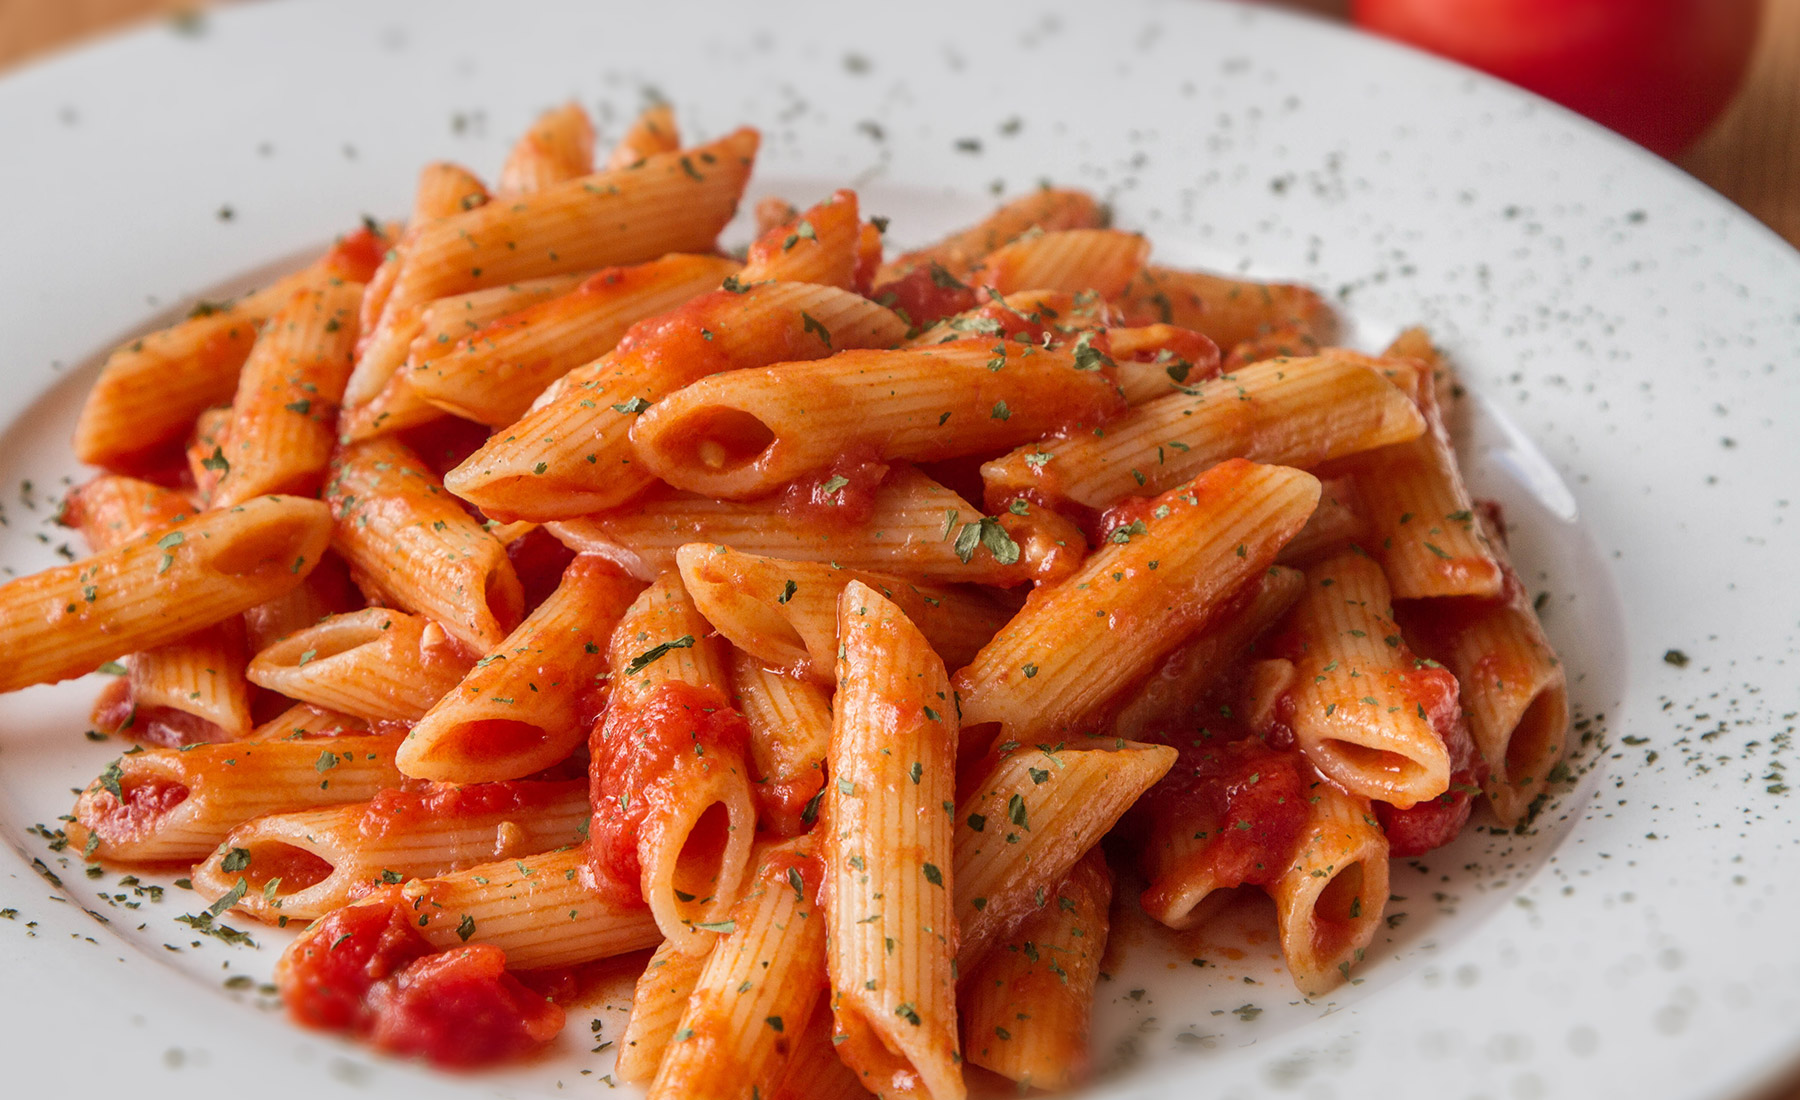 Penne all' arrabiatta